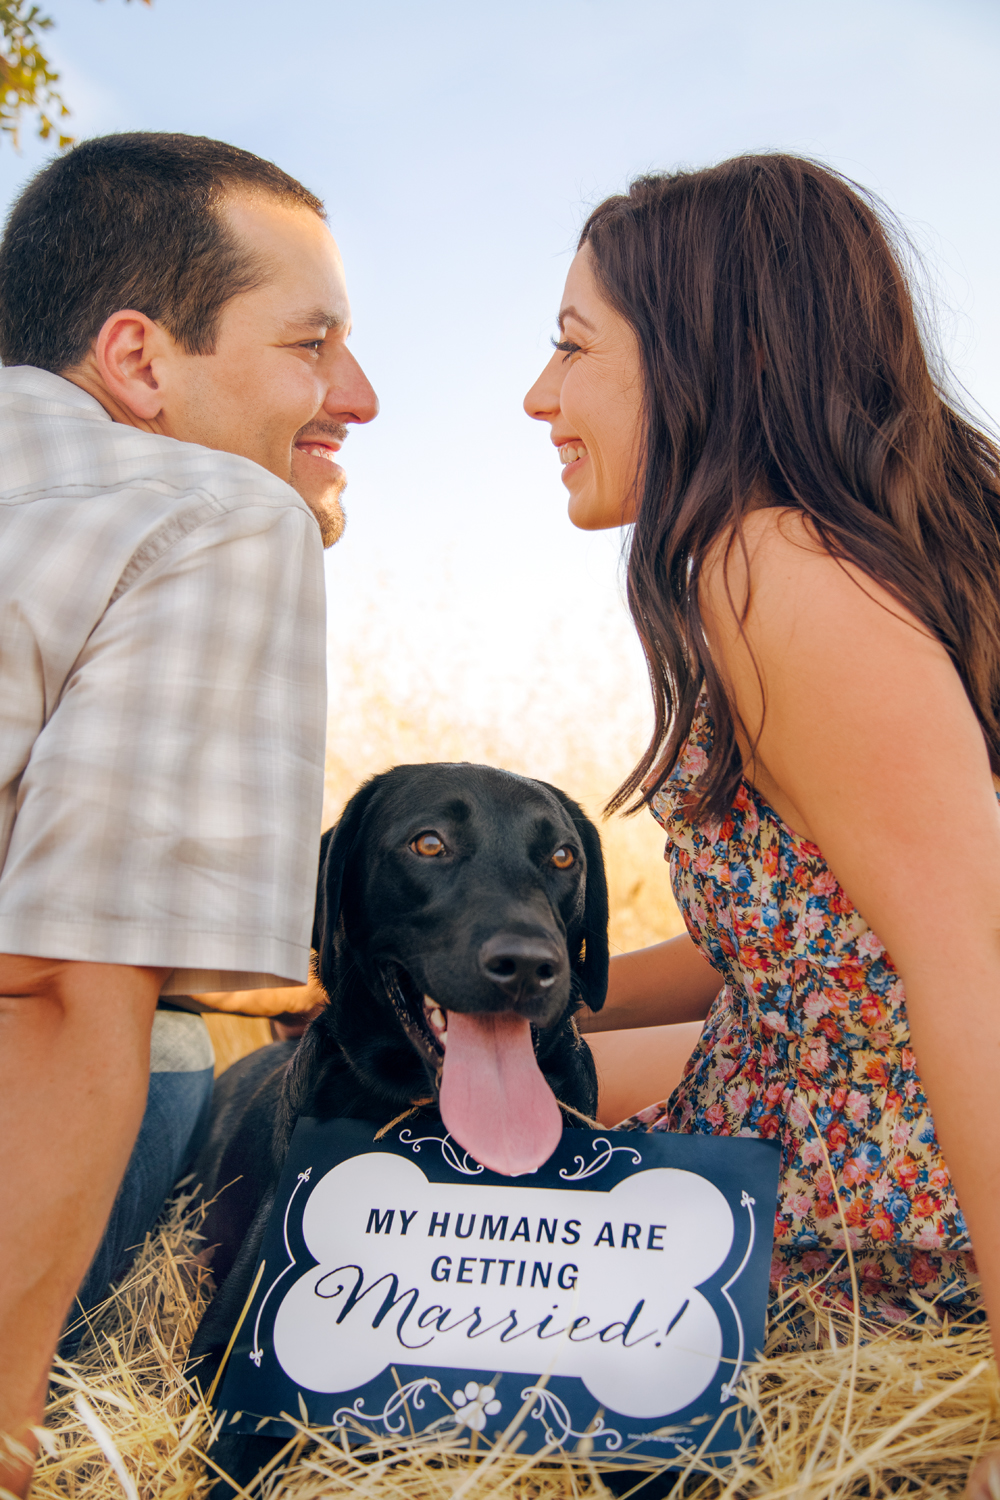 Engagement-with-Dog-photography-Upper-Bidwel-Park-Chico-14.jpg